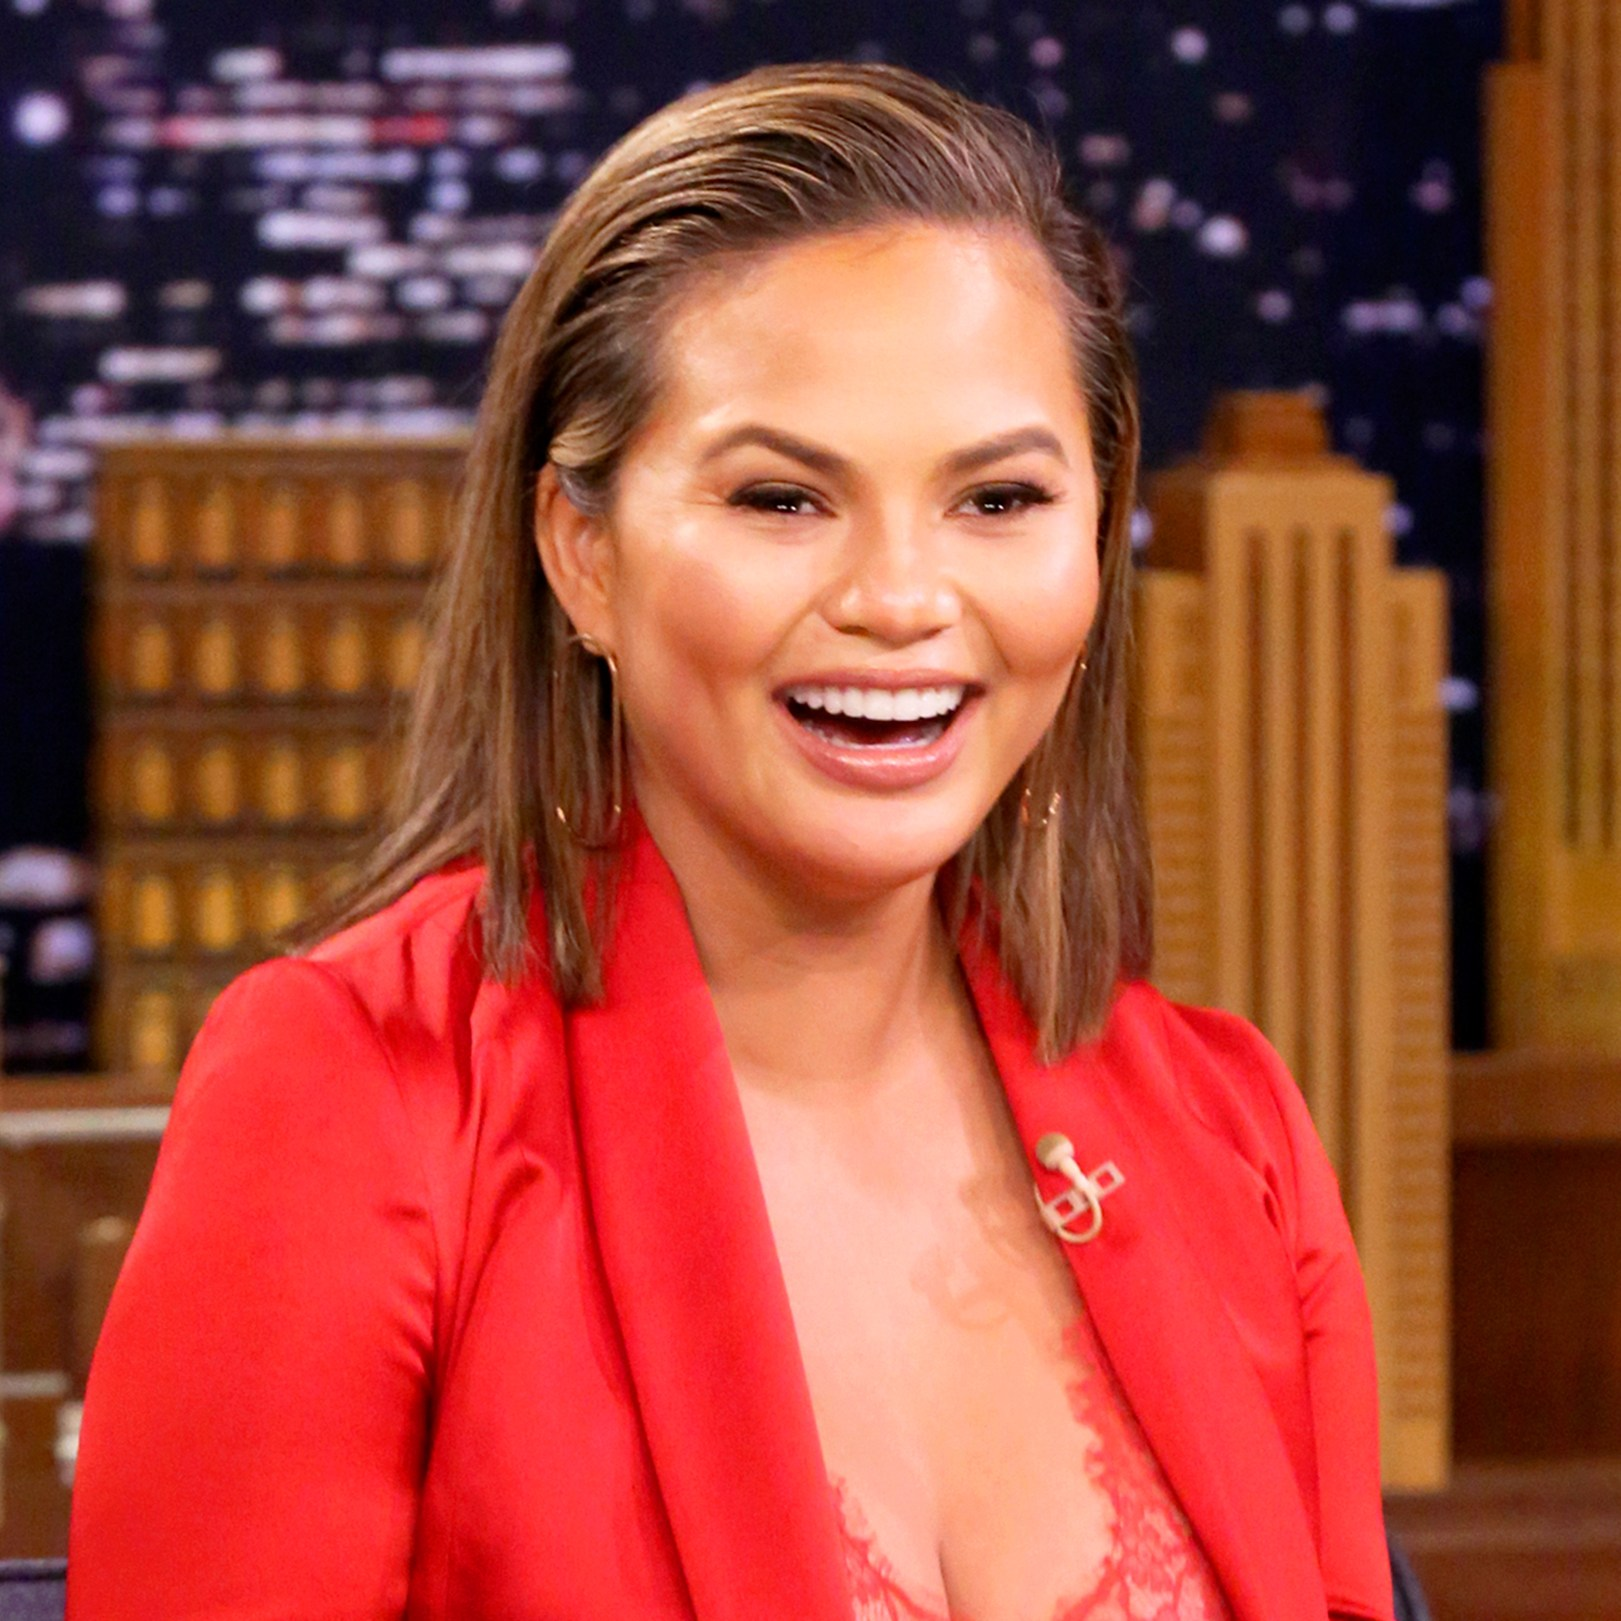 Chrissy Teigen on 'Tonight Show starring Jimmy Fallon'